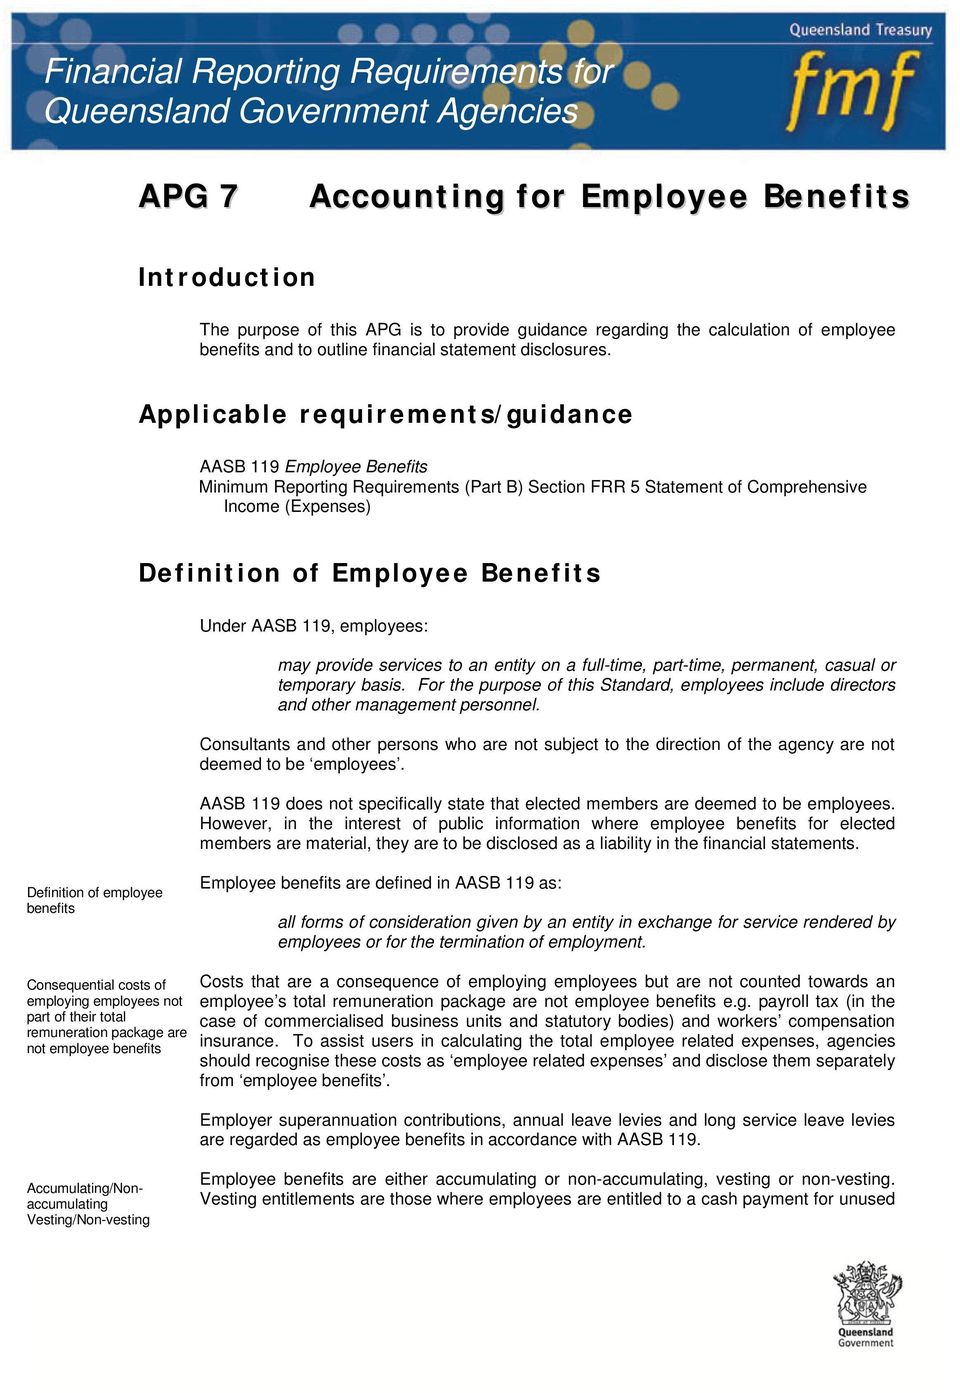 Applicable requirements/guidance AASB 119 Employee Benefits Minimum Reporting Requirements (Part B) Section FRR 5 Statement of Comprehensive Income (Expenses) Definition of Employee Benefits Under